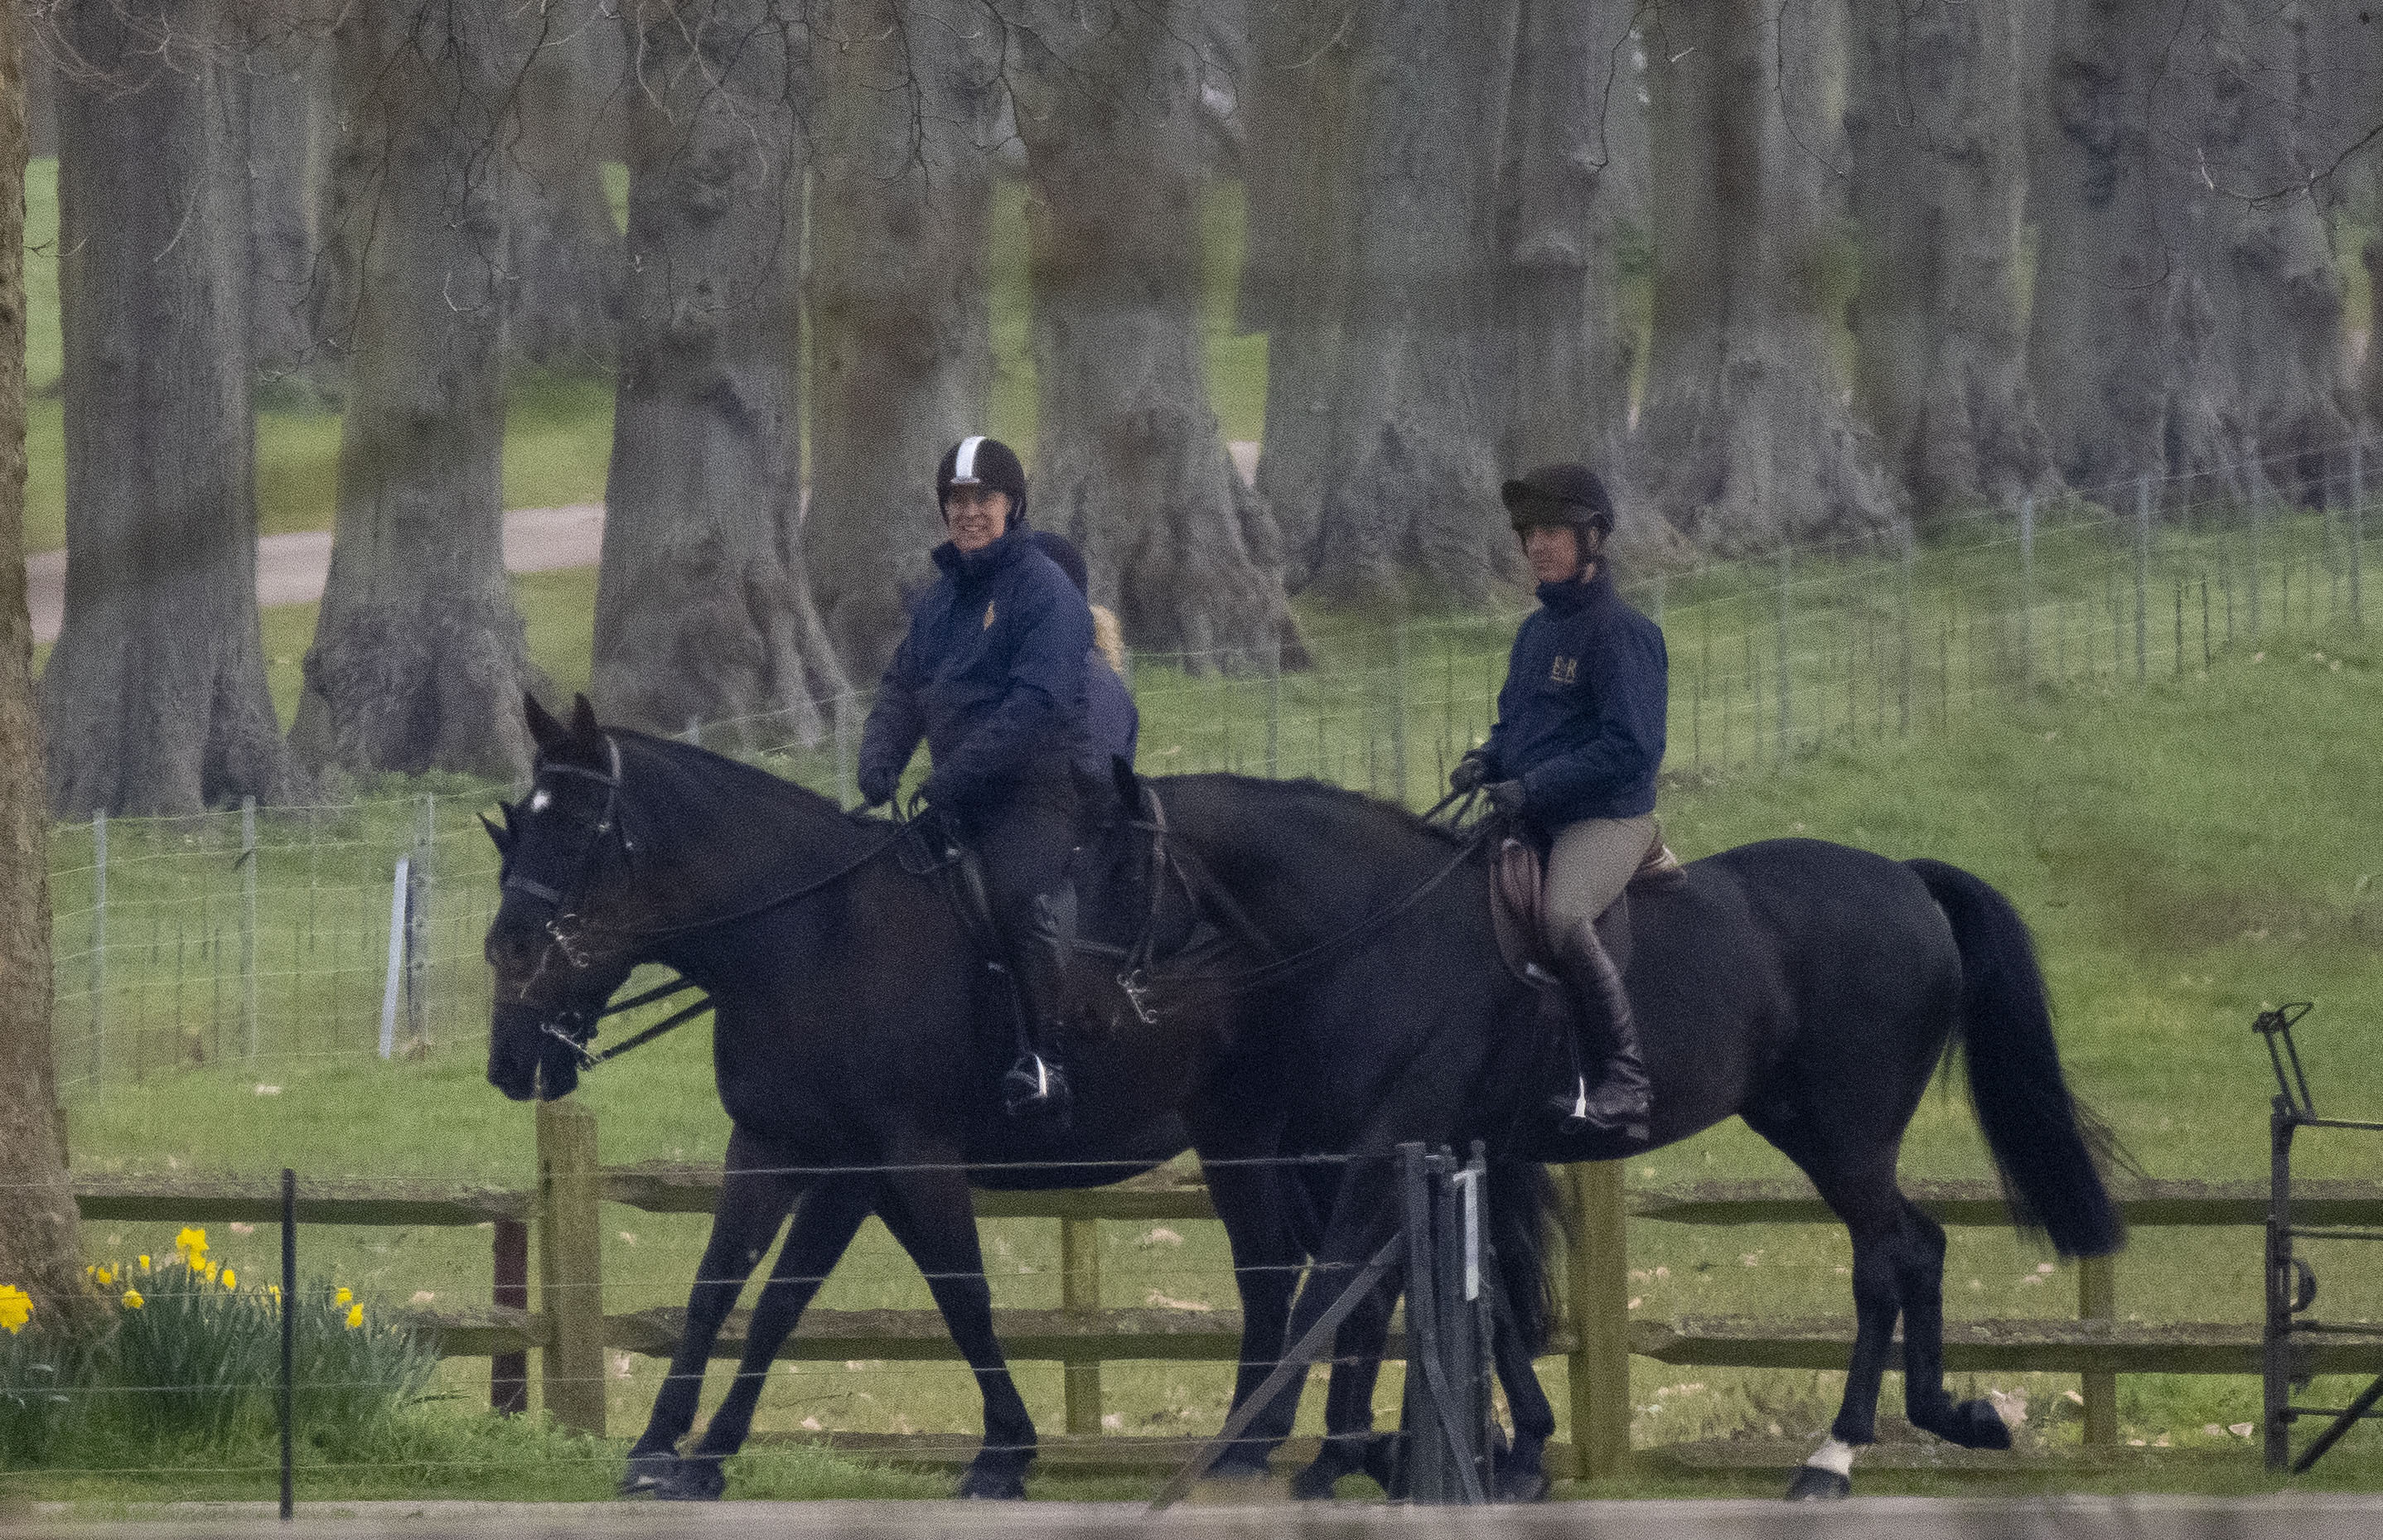 <p>Photo by: zz/KGC-09/330/STAR MAX/IPx 2021 3/17/21 Prince Andrew The Duke of York is seen on March 17, 2021 horseback riding for the first time since national lockdown restrictions were eased during the worldwide coronavirus pandemic. Andrew then visited his father, Prince Philip The Duke of Edinburgh, who is convalescing at Windsor Castle following his release from the hospital on March 16th after undergoing heart surgery. (Windsor, England, UK)</p>